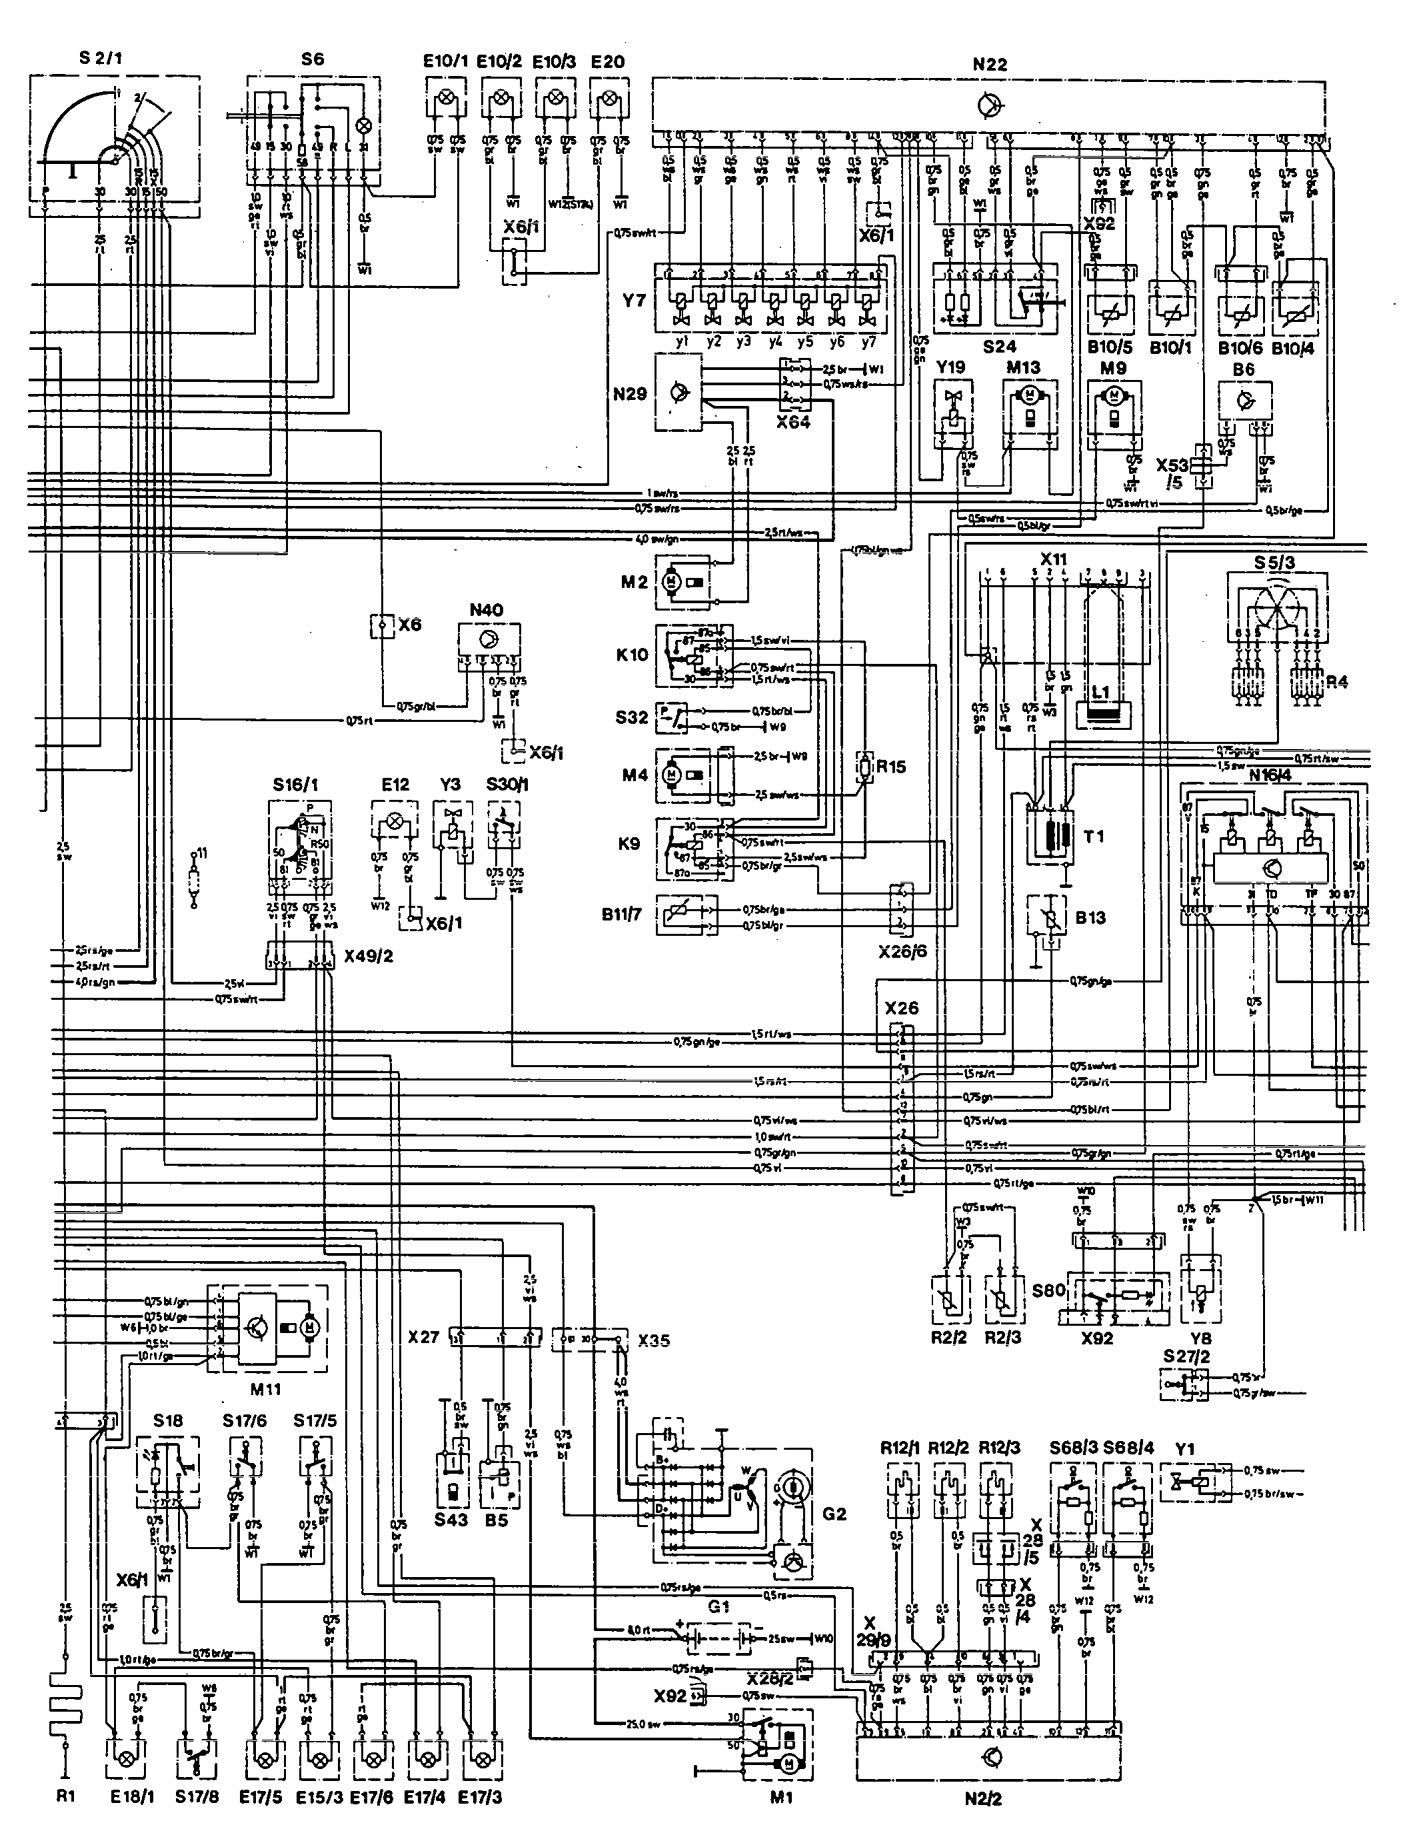 Mercedes-Benz 300E (1992 - 1993) - wiring diagrams - instrumentation ...